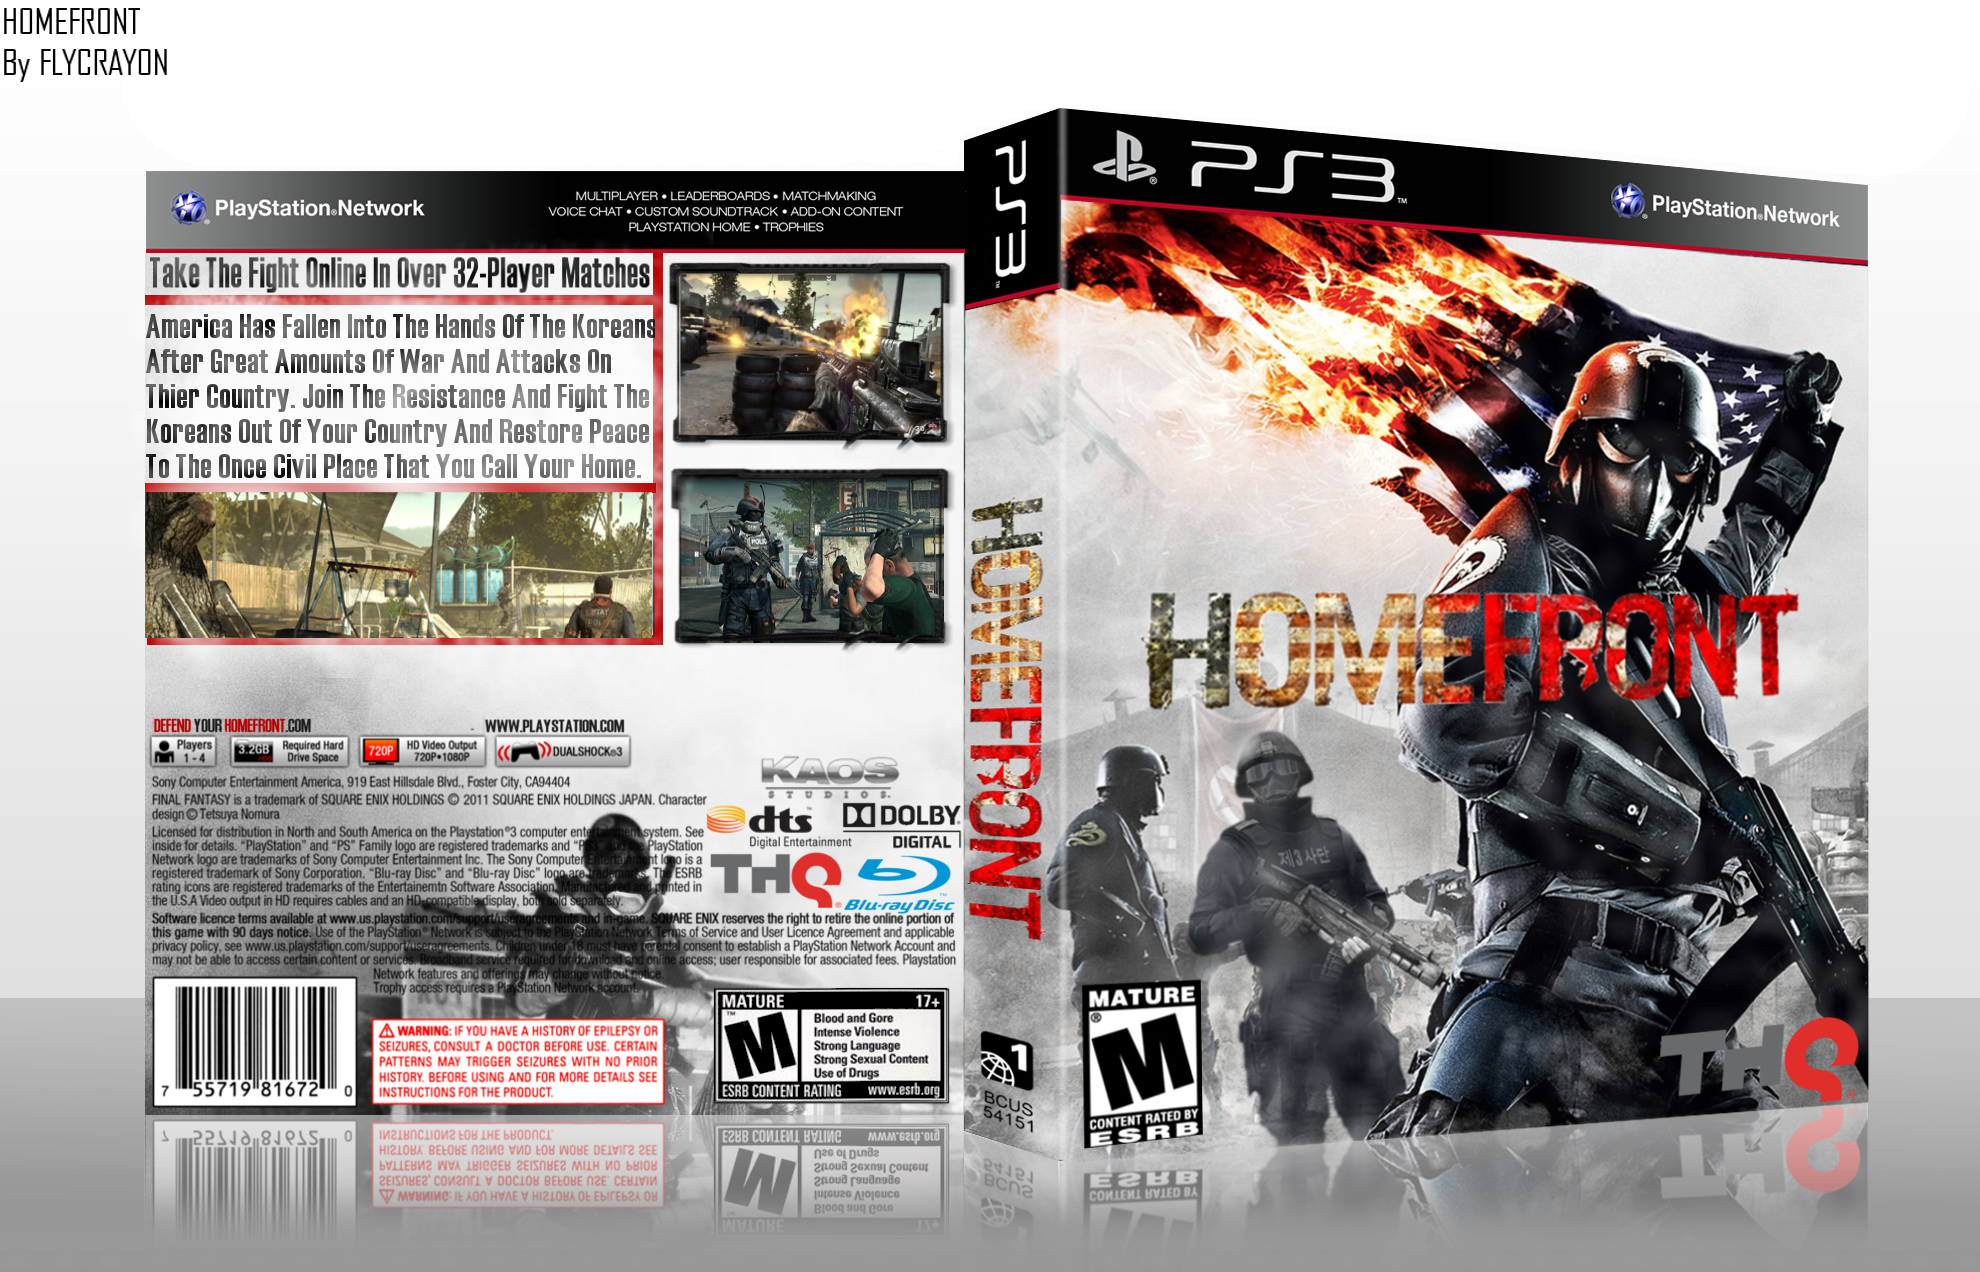 Homefront box cover